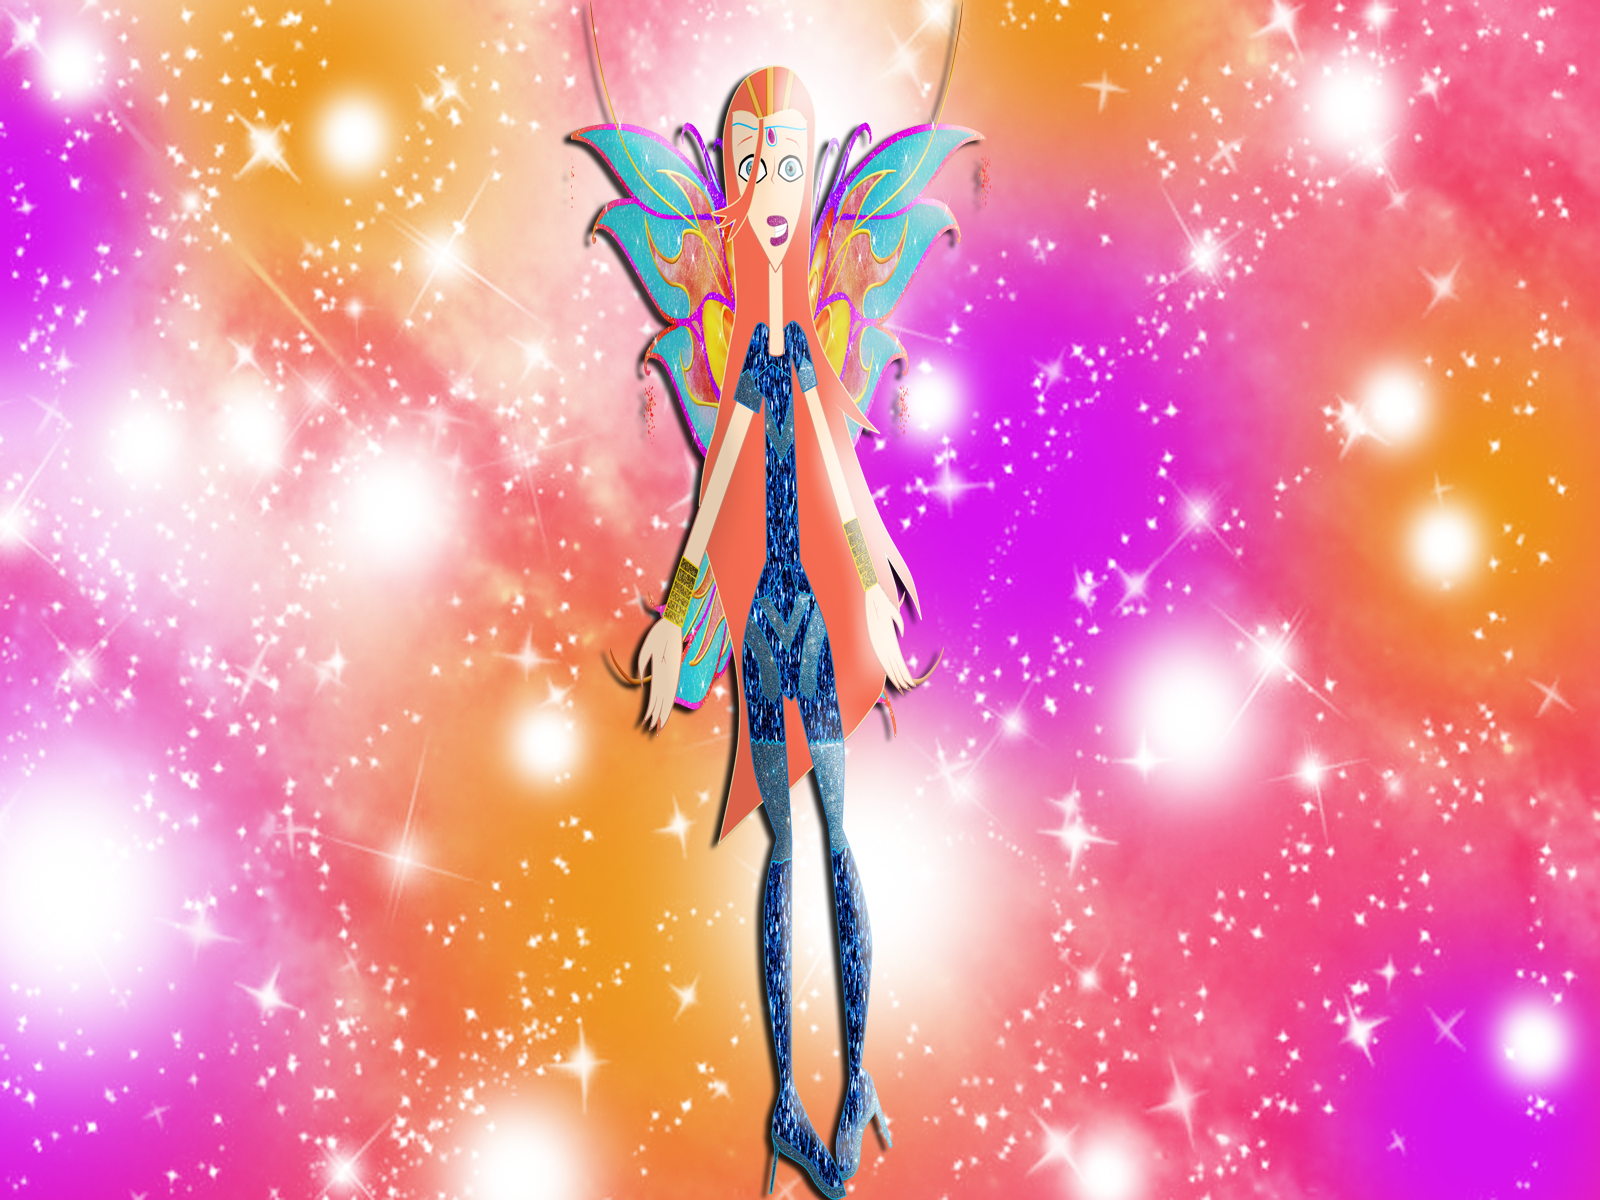 Winx club bloom bloomix by eddy7454 on deviantart - Winx magic bloomix ...